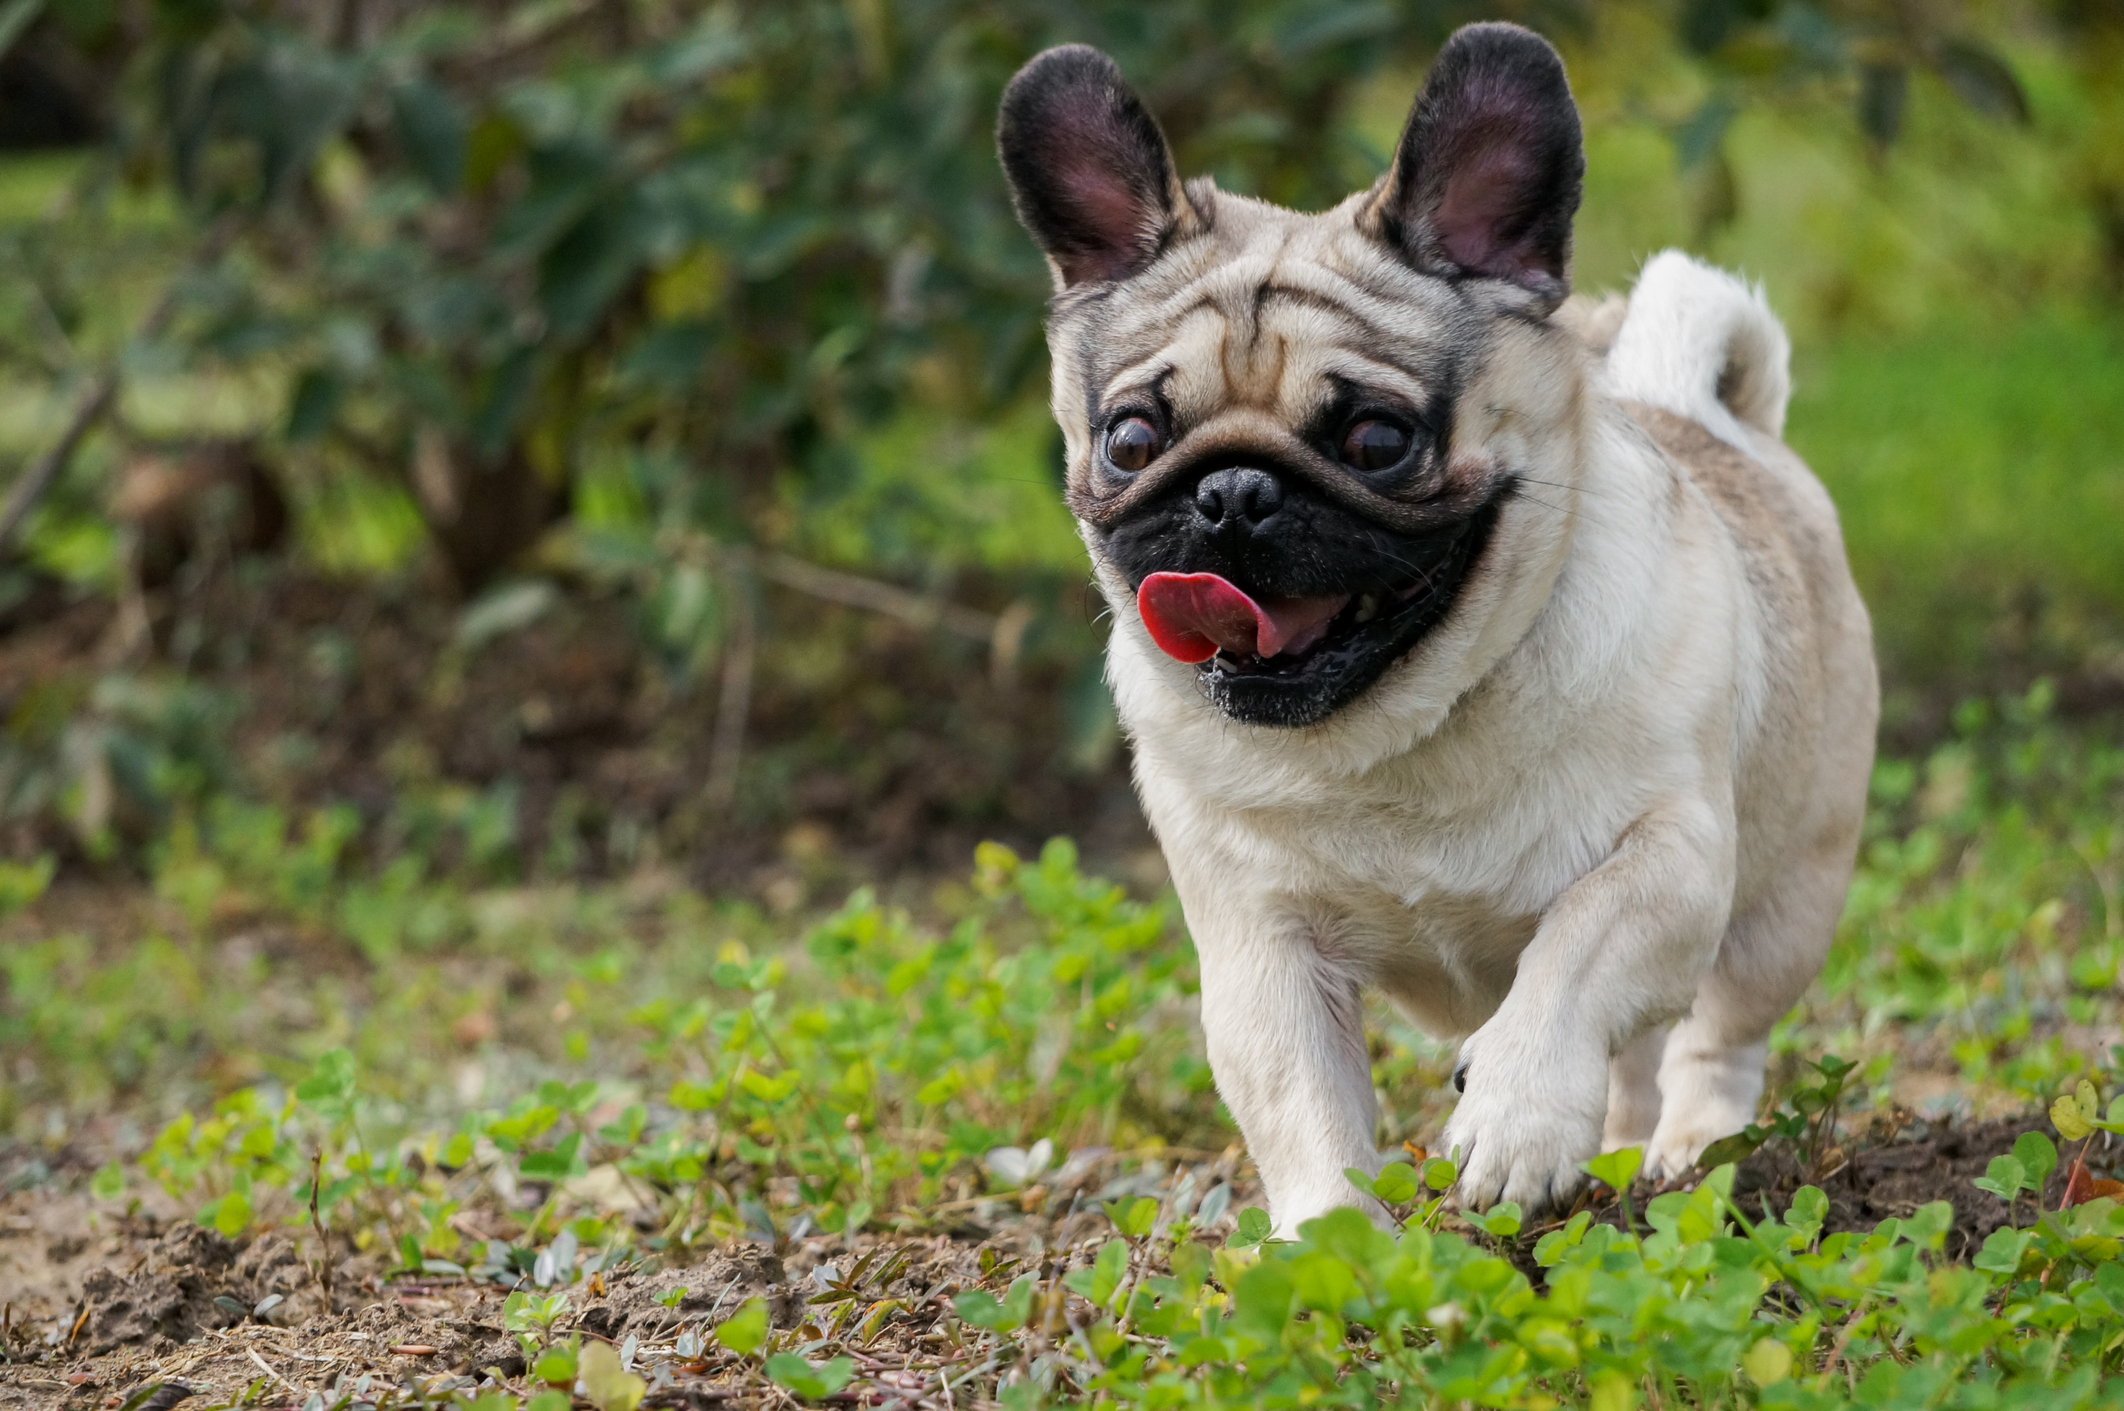 Dog Genetics and Health Issues to Be Aware Of